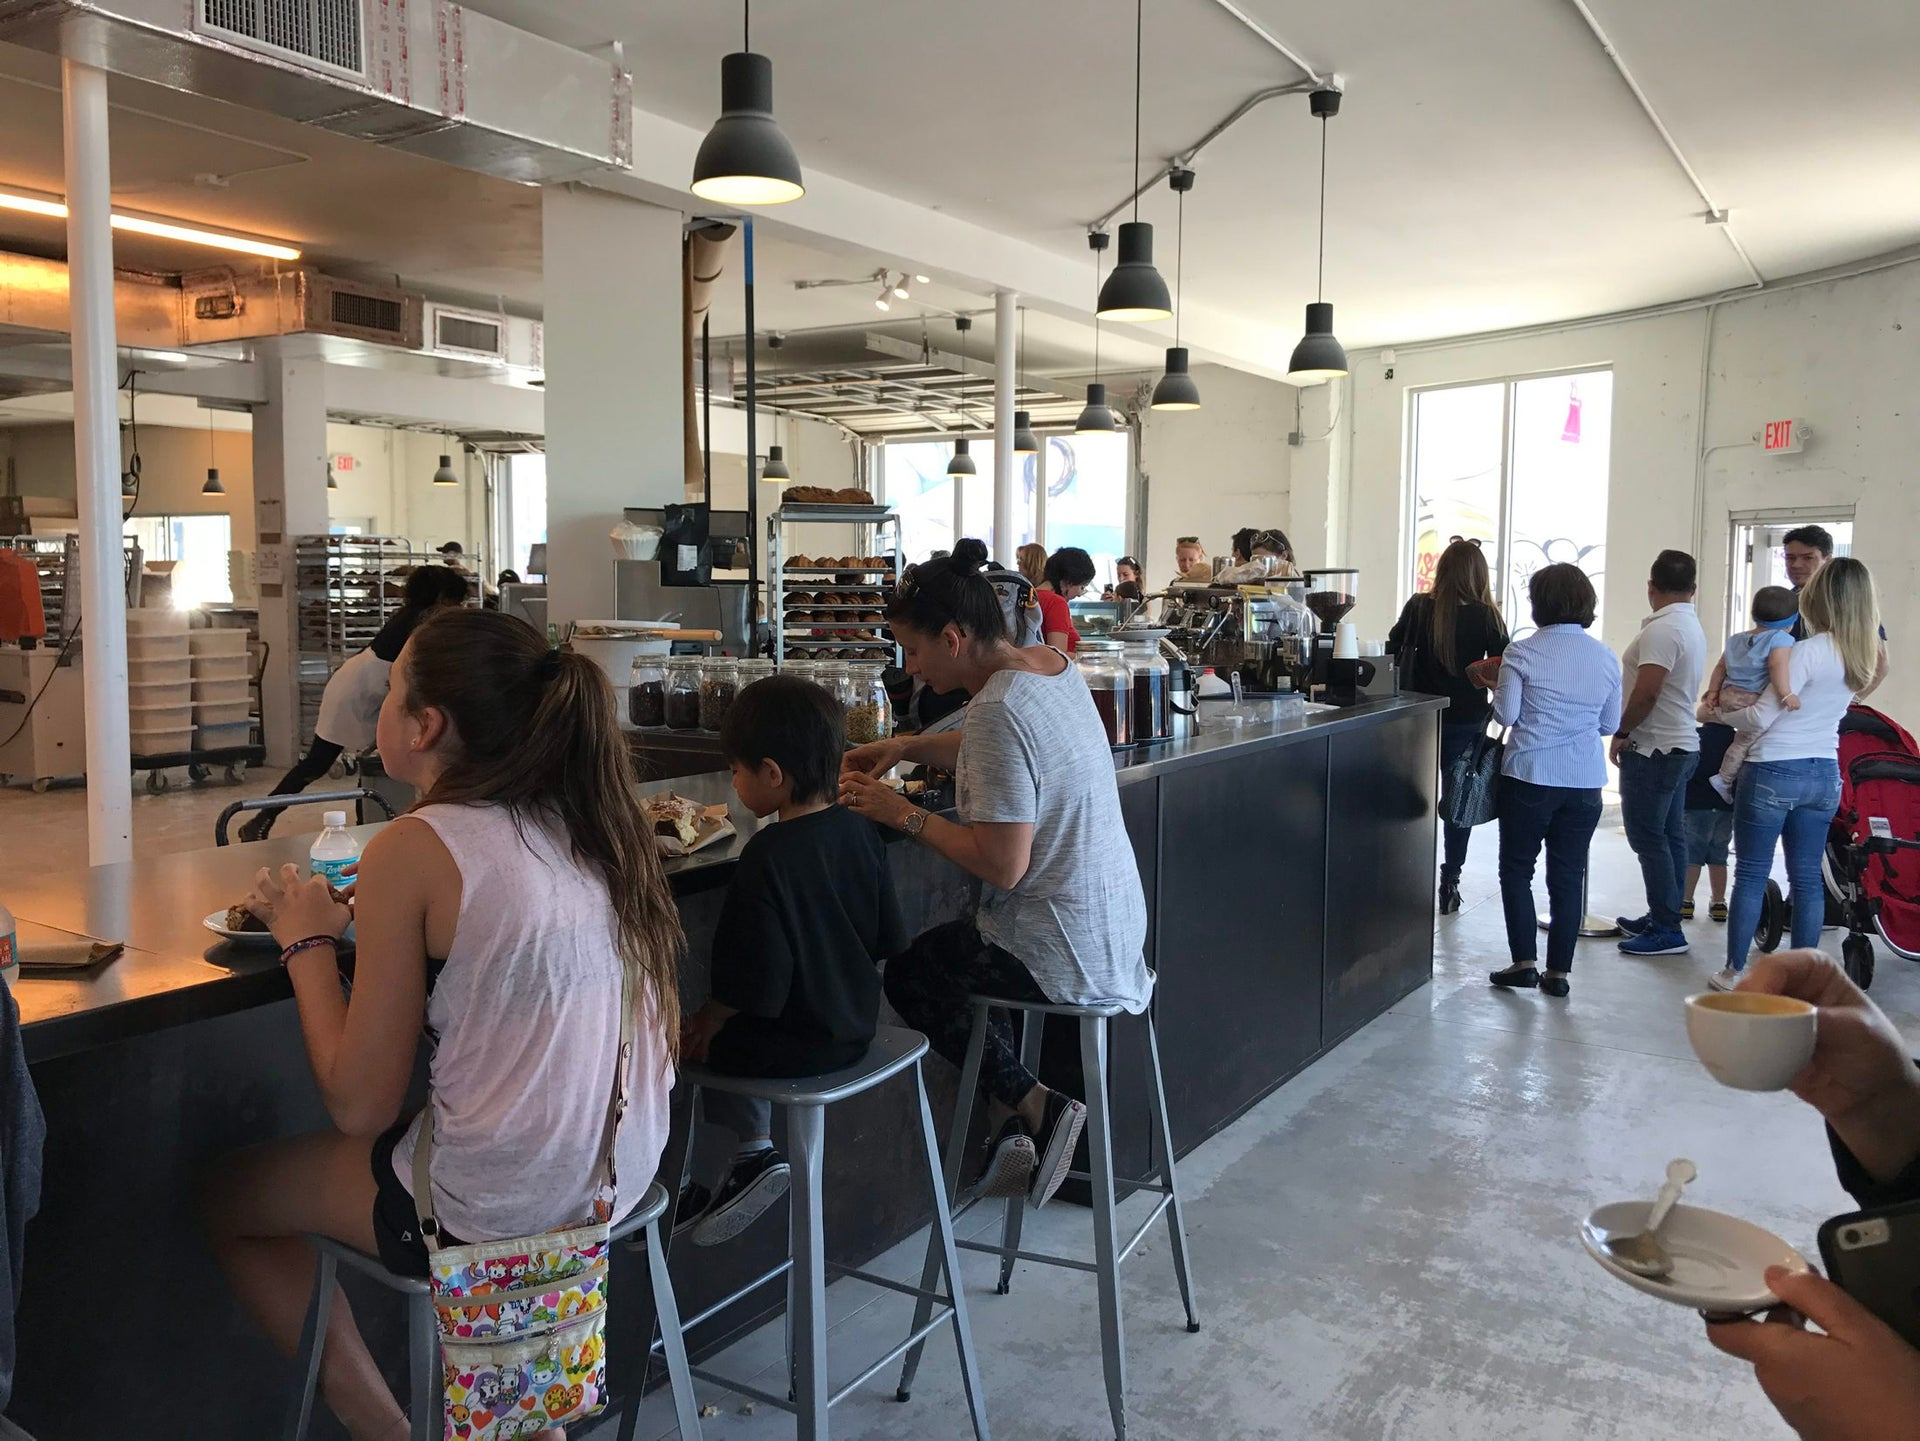 The interior of Bakery in Wynwood, Miami.